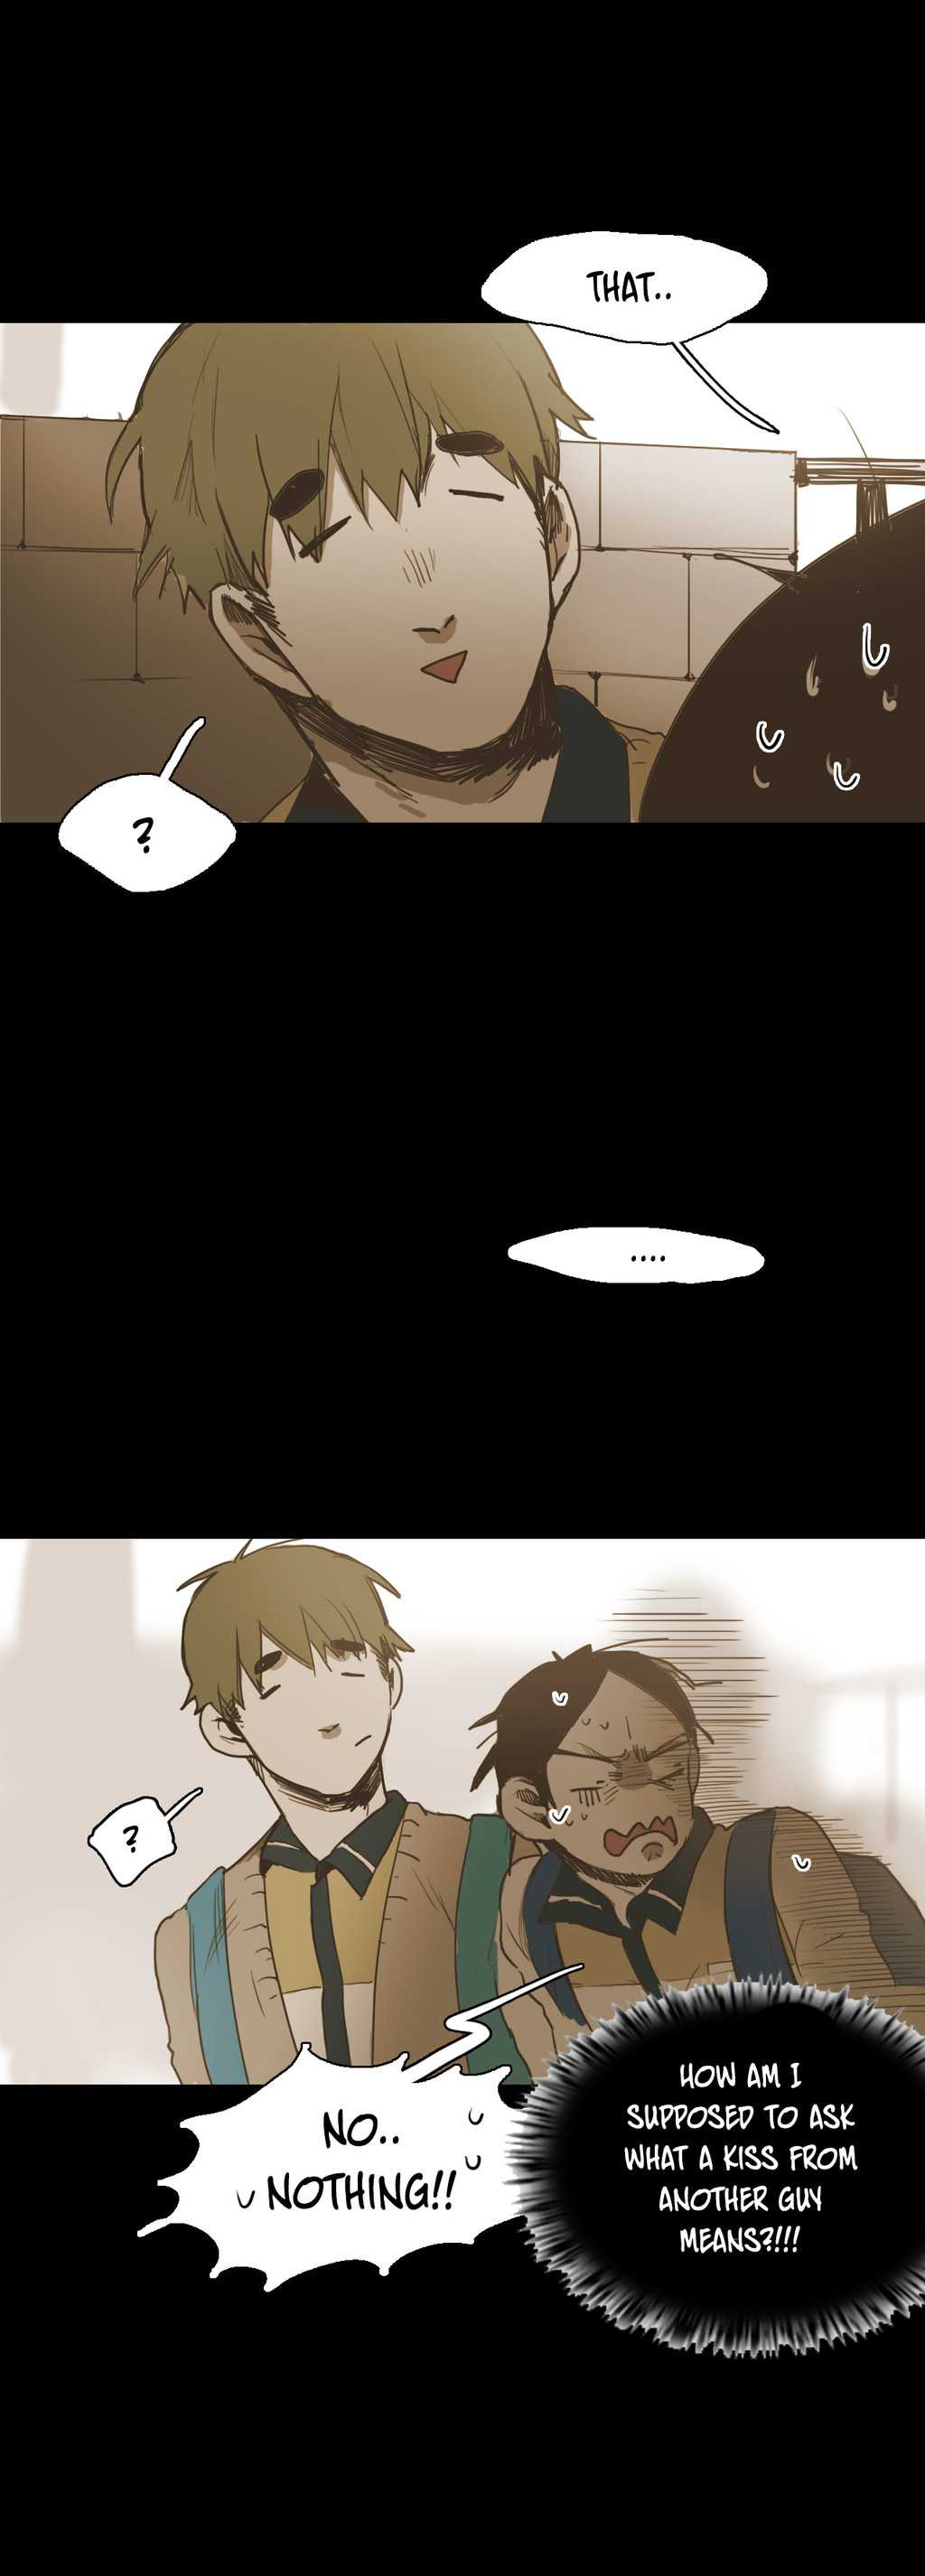 Never Understand - Chapter 28